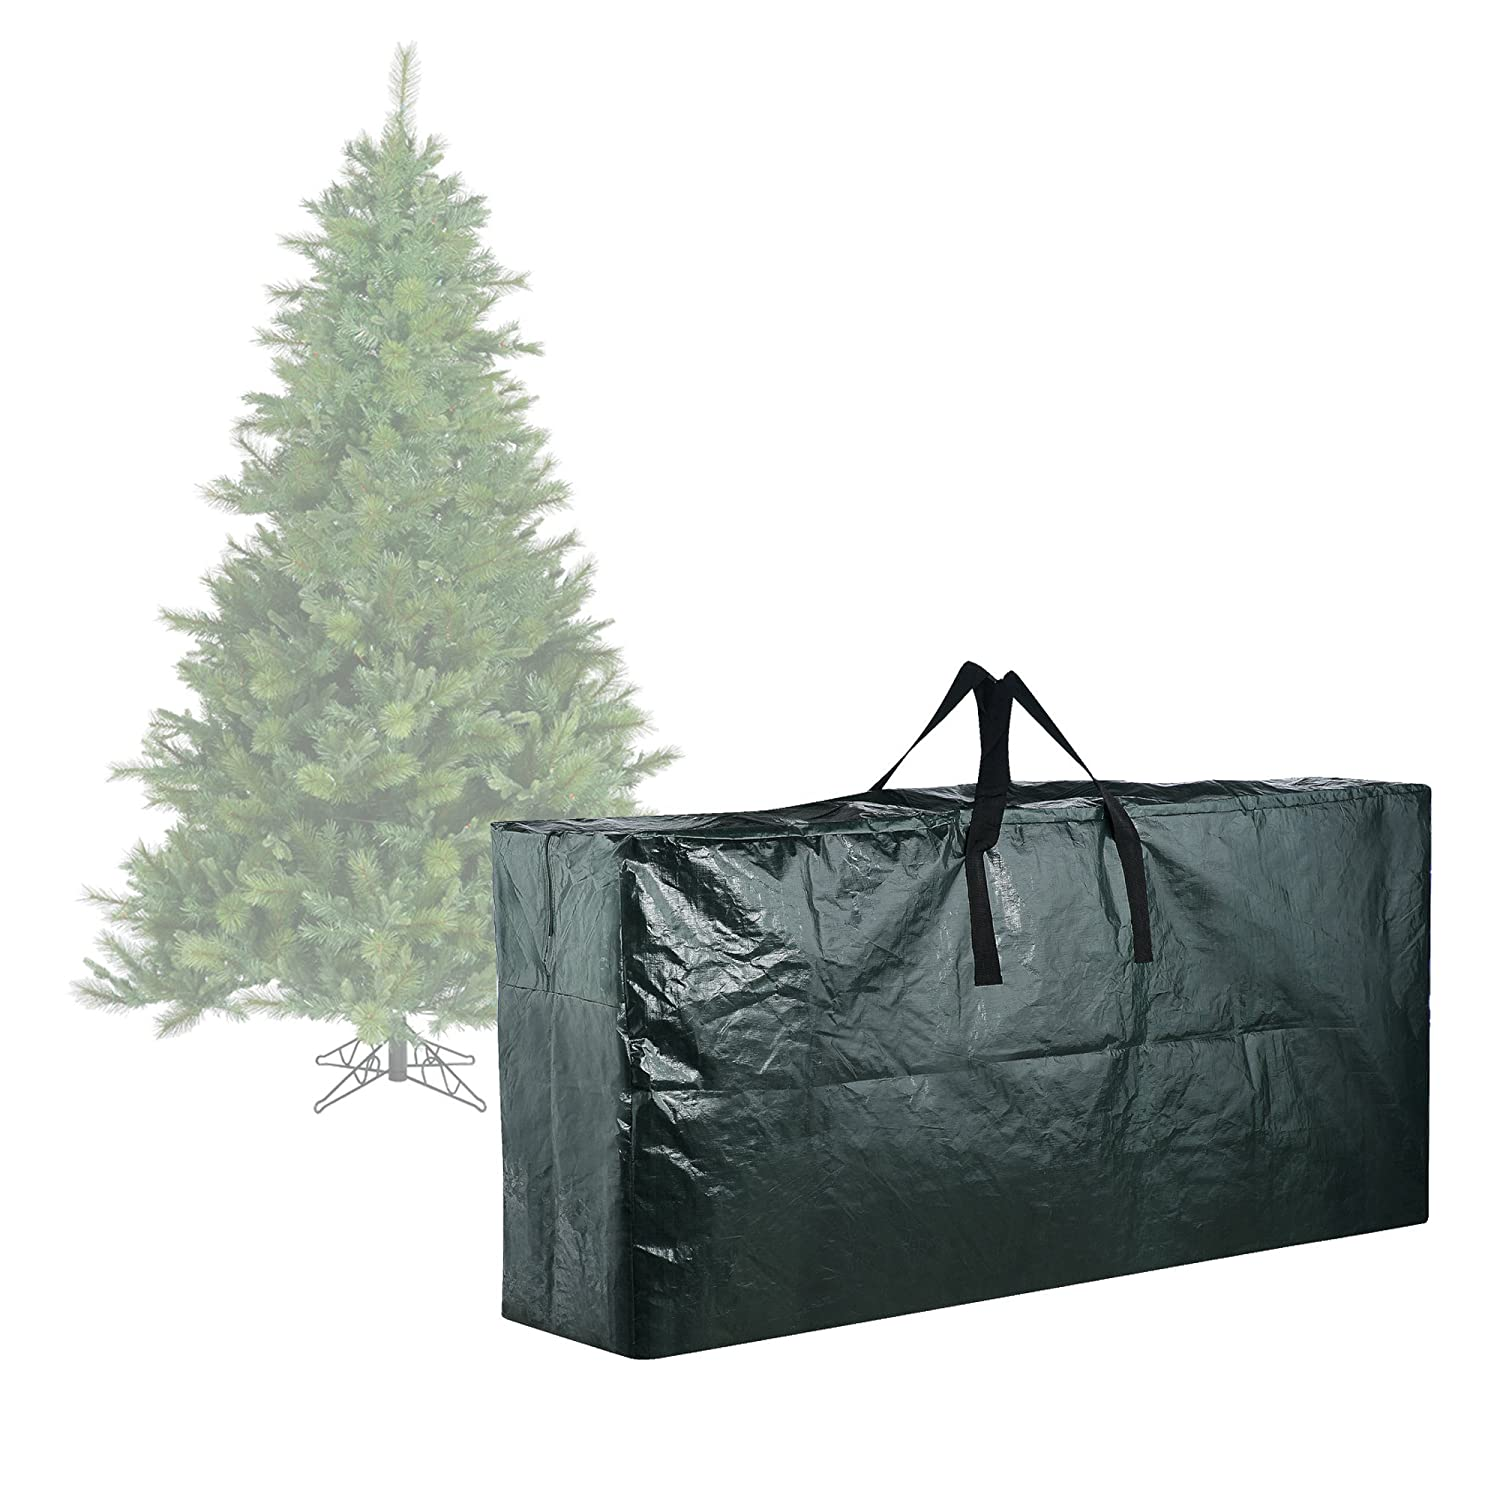 amazoncom elf stor premium green christmas tree bag holiday extra large for up to 9 tree storage home kitchen - Christmas Tree Bags Amazon